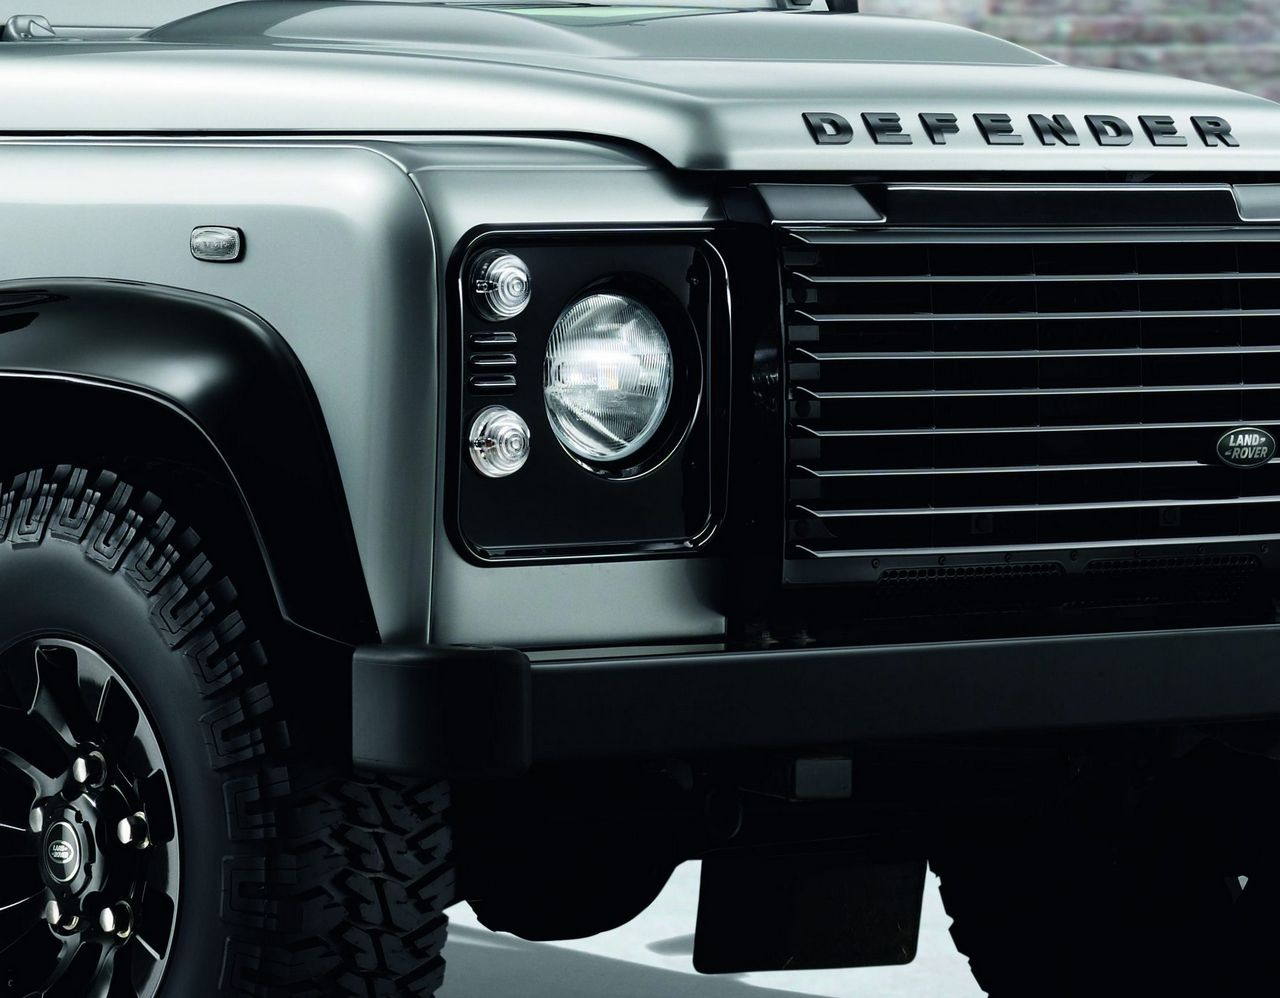 anteprima-salone-di-ginevra-2014-land-rover-defender-black-pack-e-silver-pack-special-edition-0-100_13